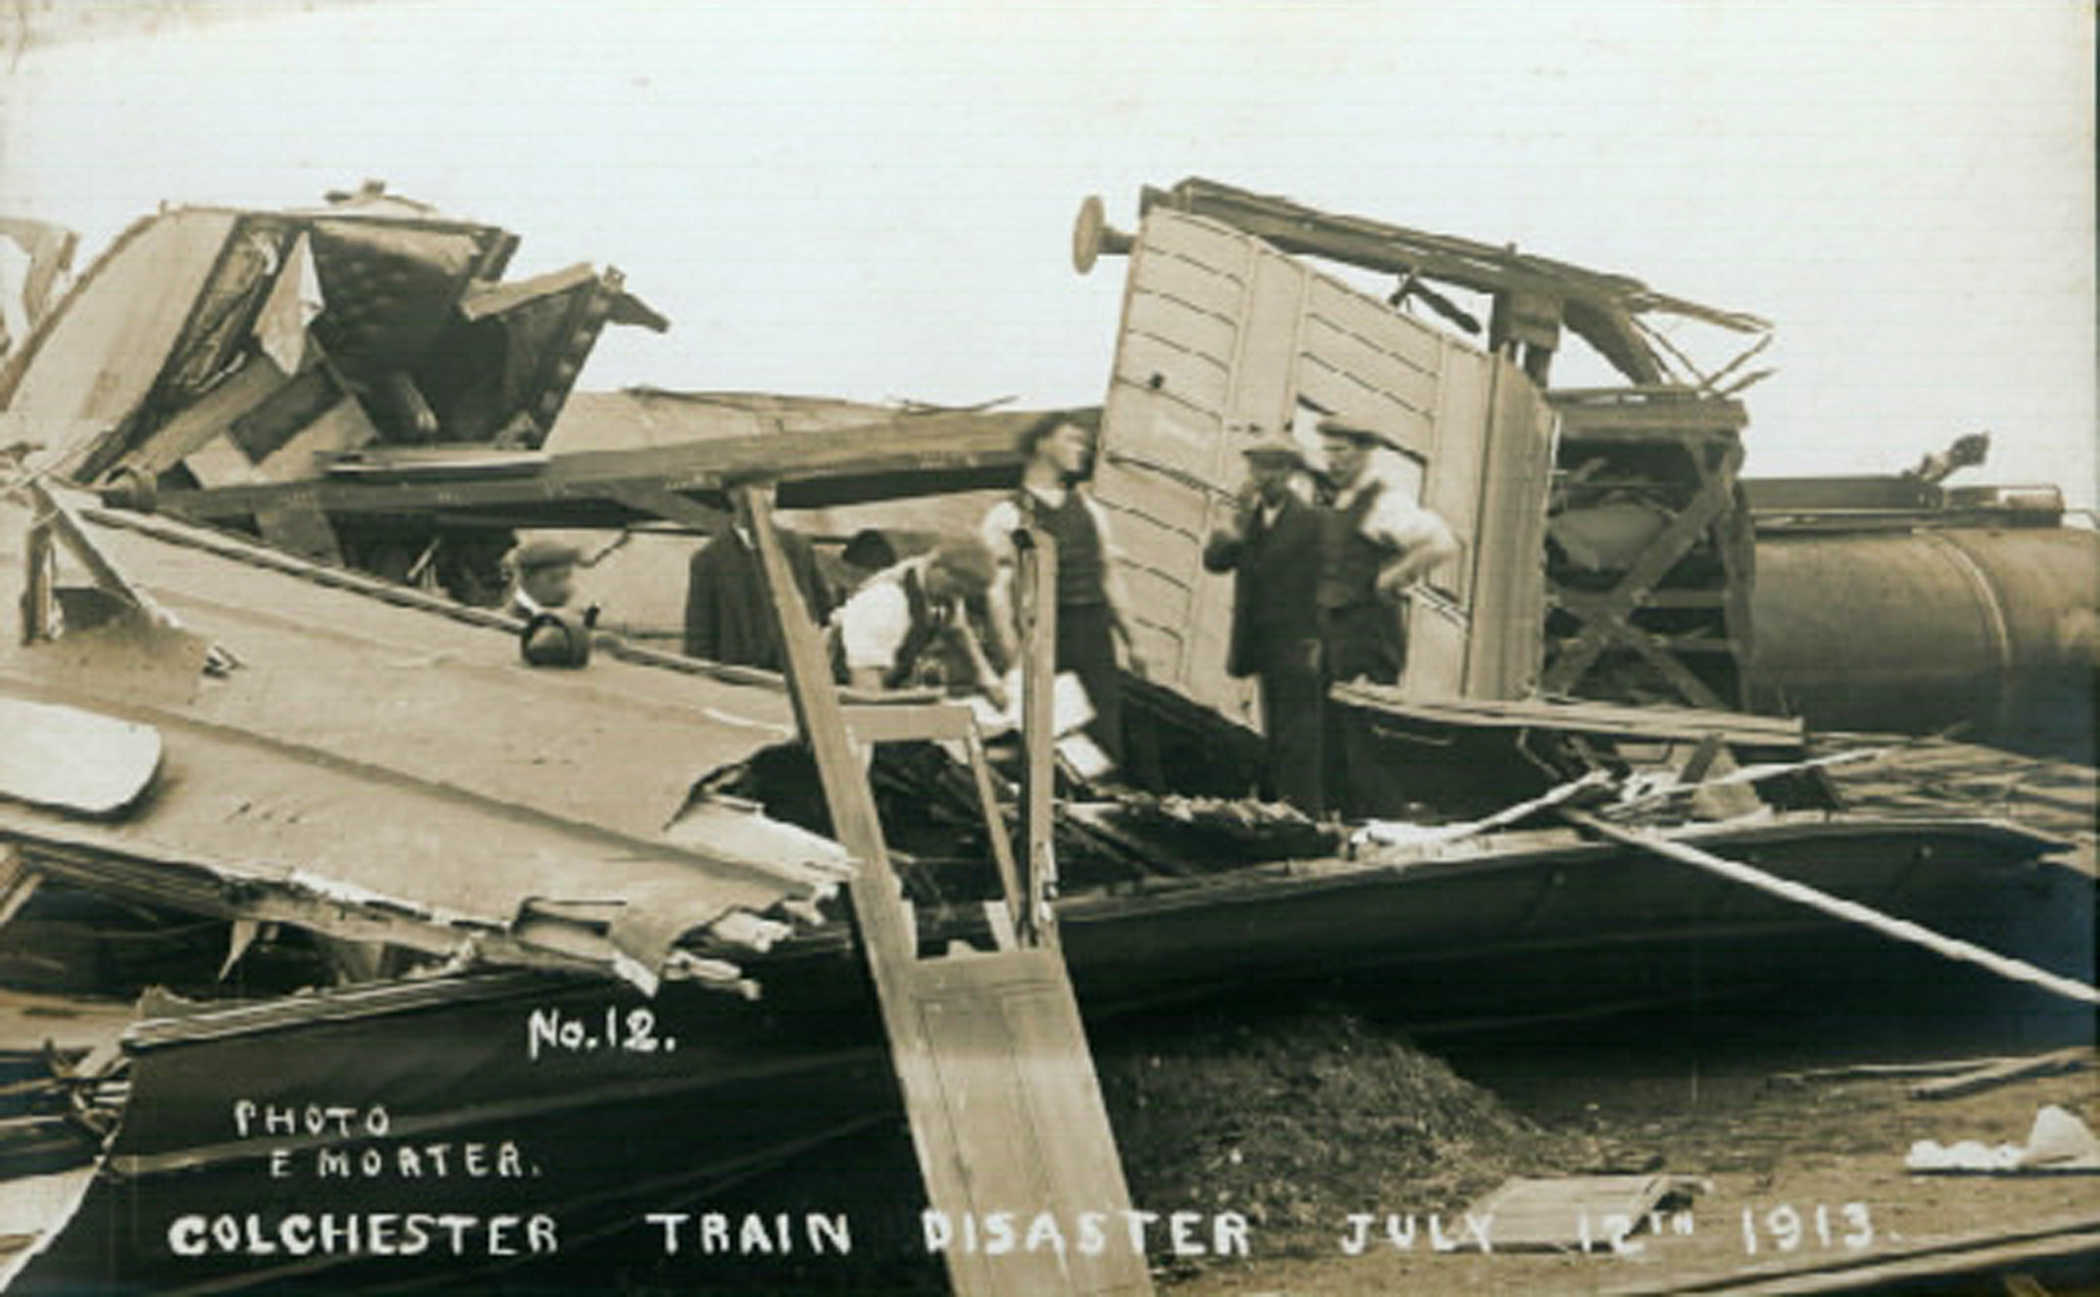 Disaster - this photograph shows the aftermath of the train crash which took place in Colchester on July 12, 1913